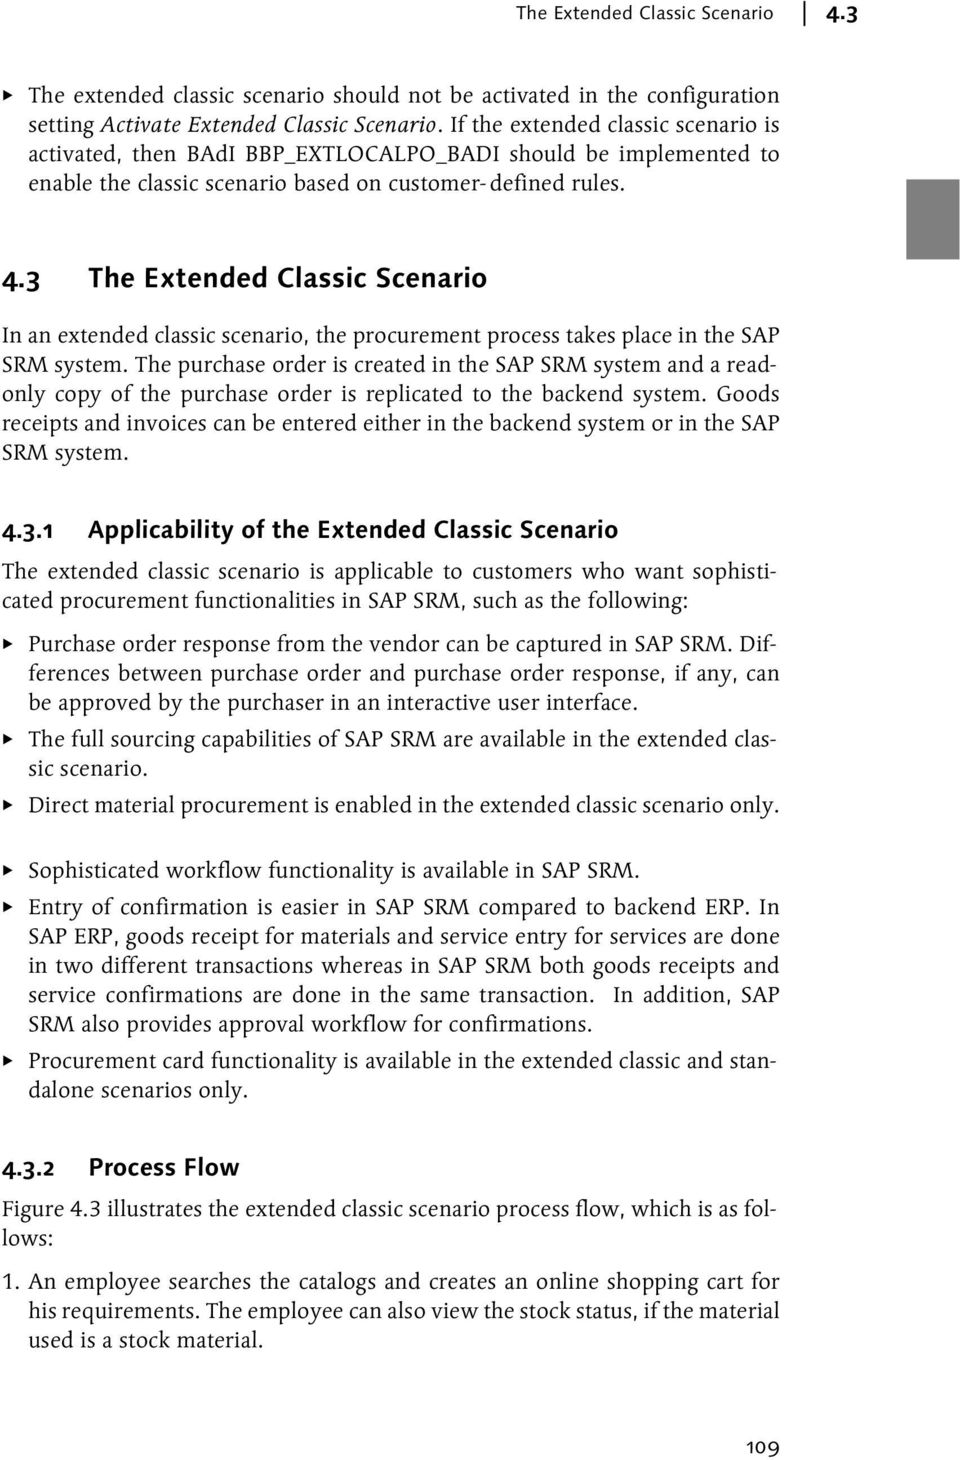 The Consultant s Guide to SAP SRM - PDF